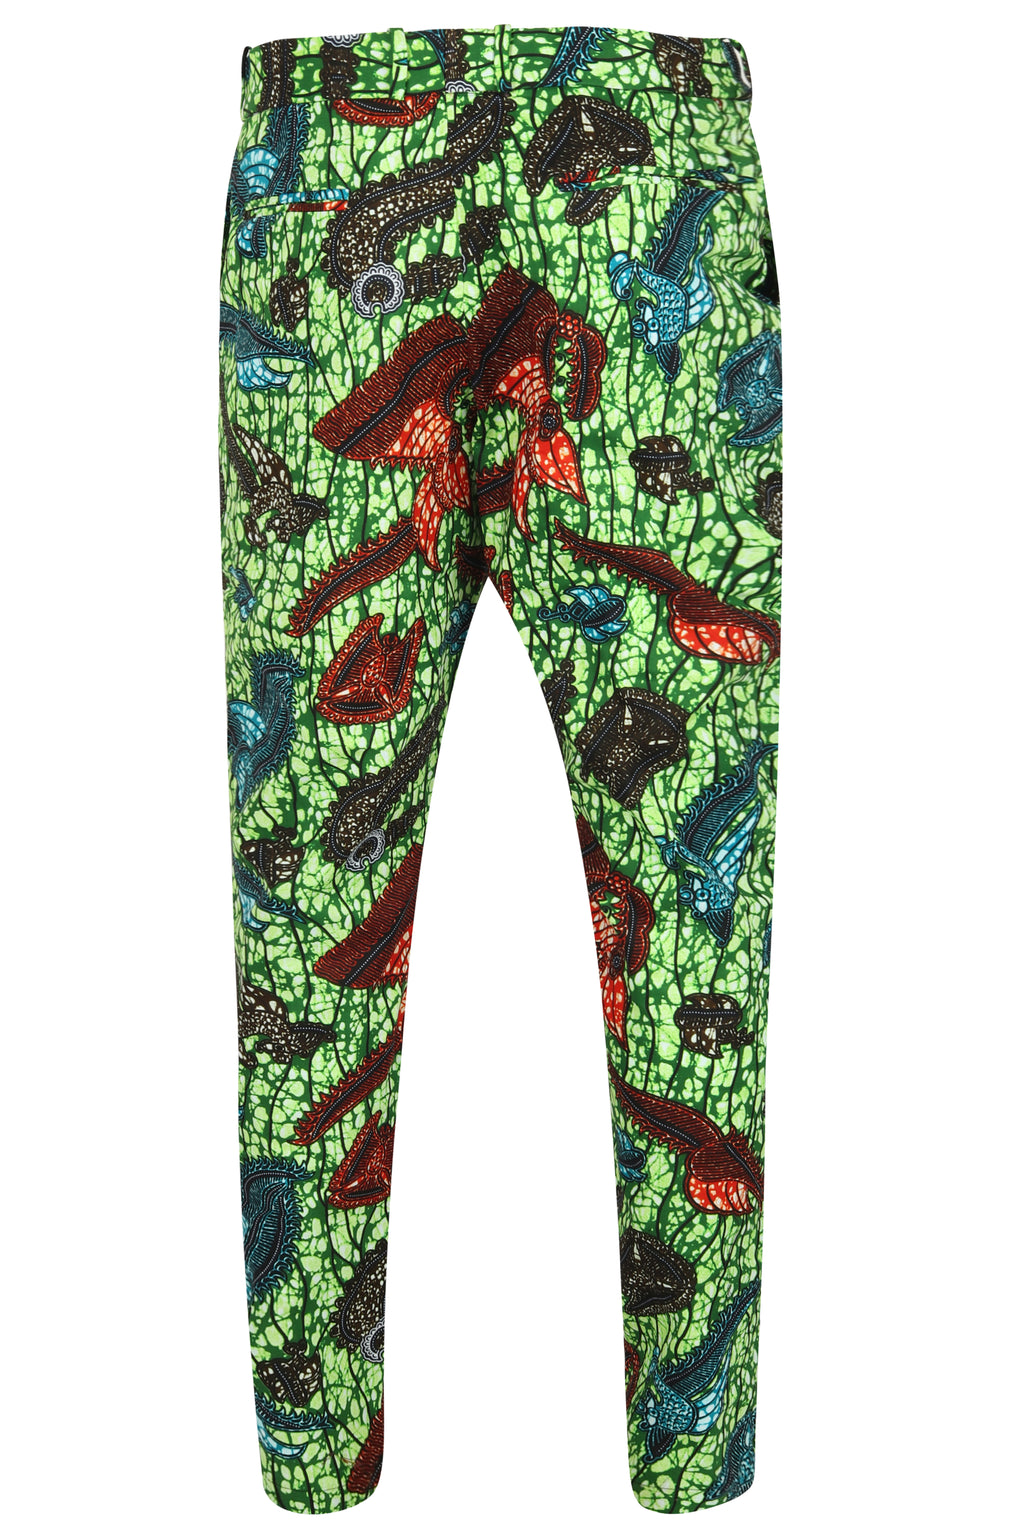 Men's Green African print Fitted trouser-Sea King